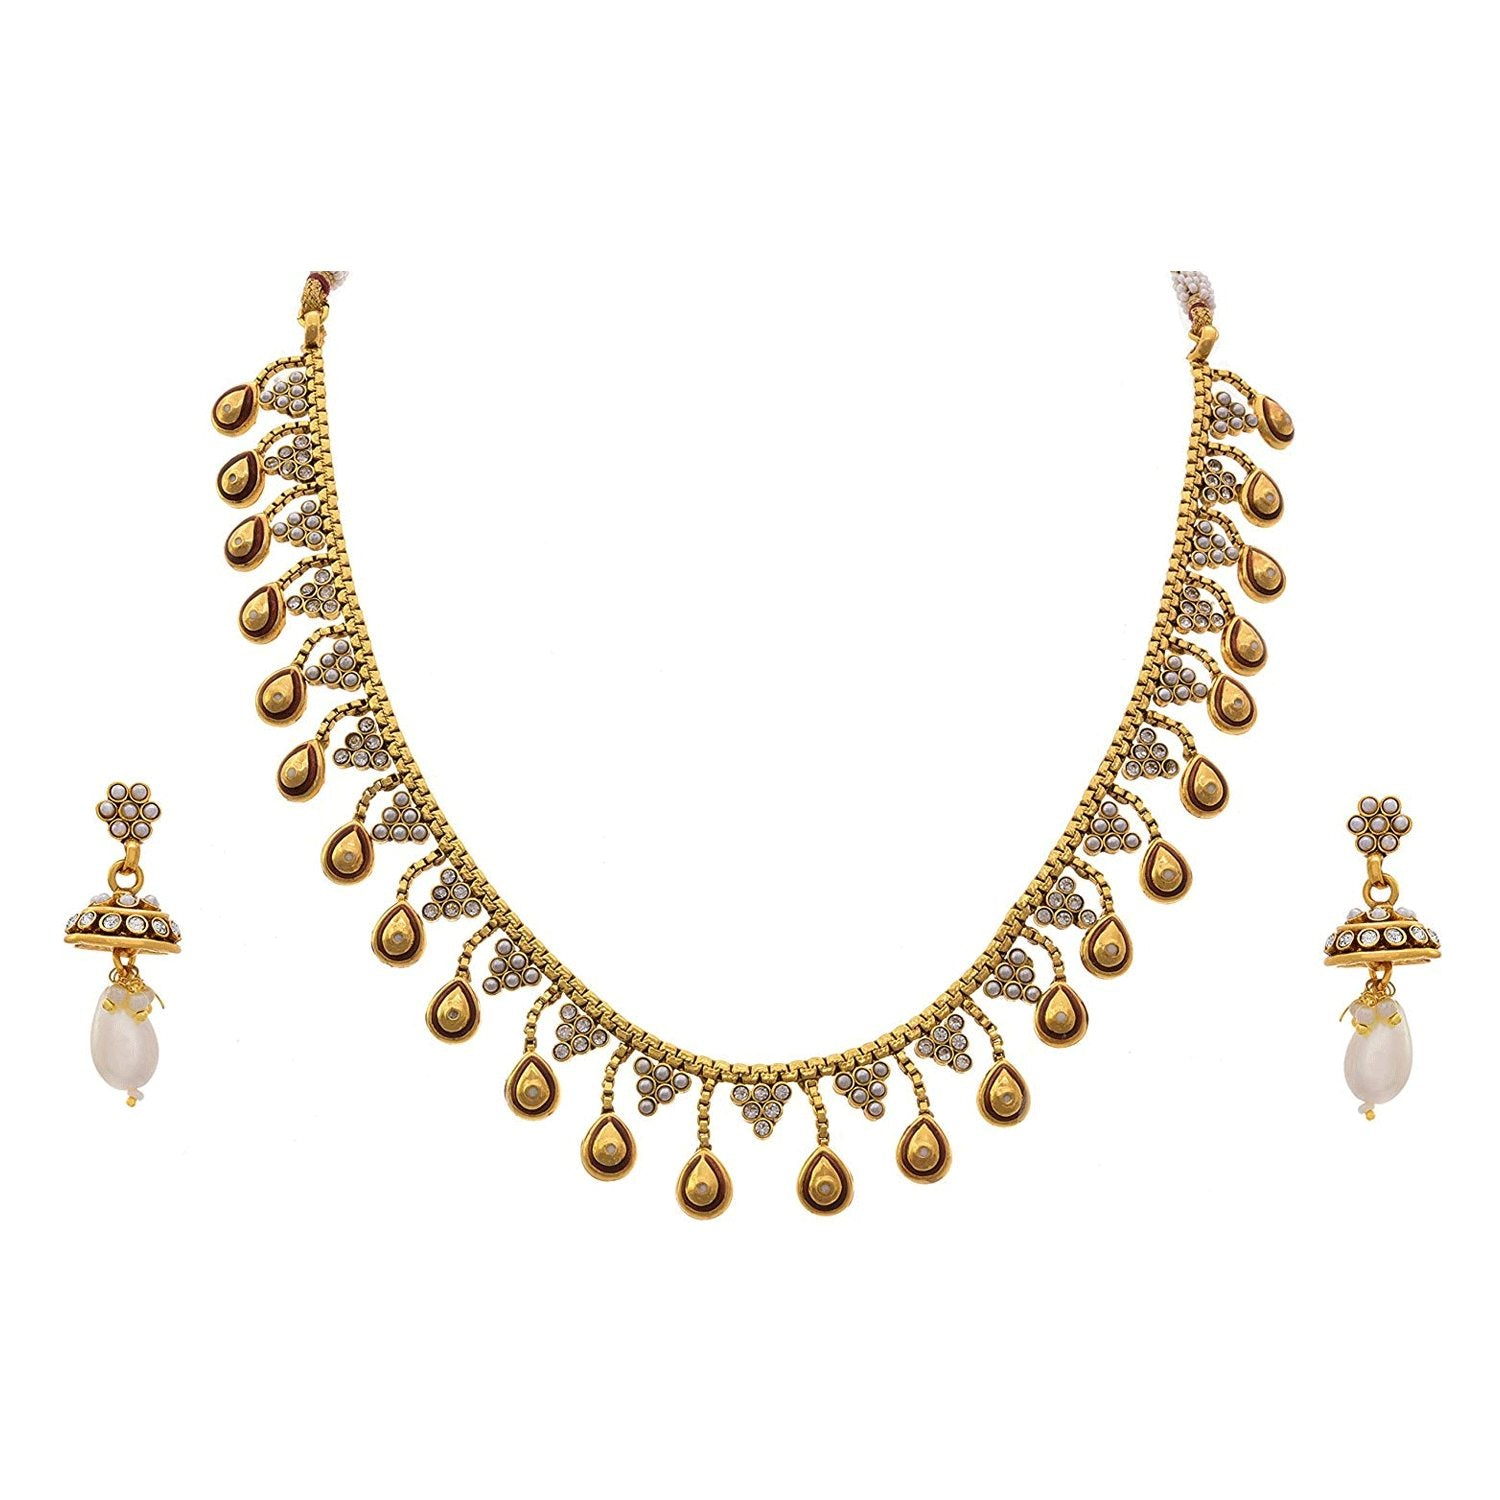 JFL - Traditional Ethnic One Gram Gold Plated Pearls Diamond Designer Necklace Set for Women & Girls.